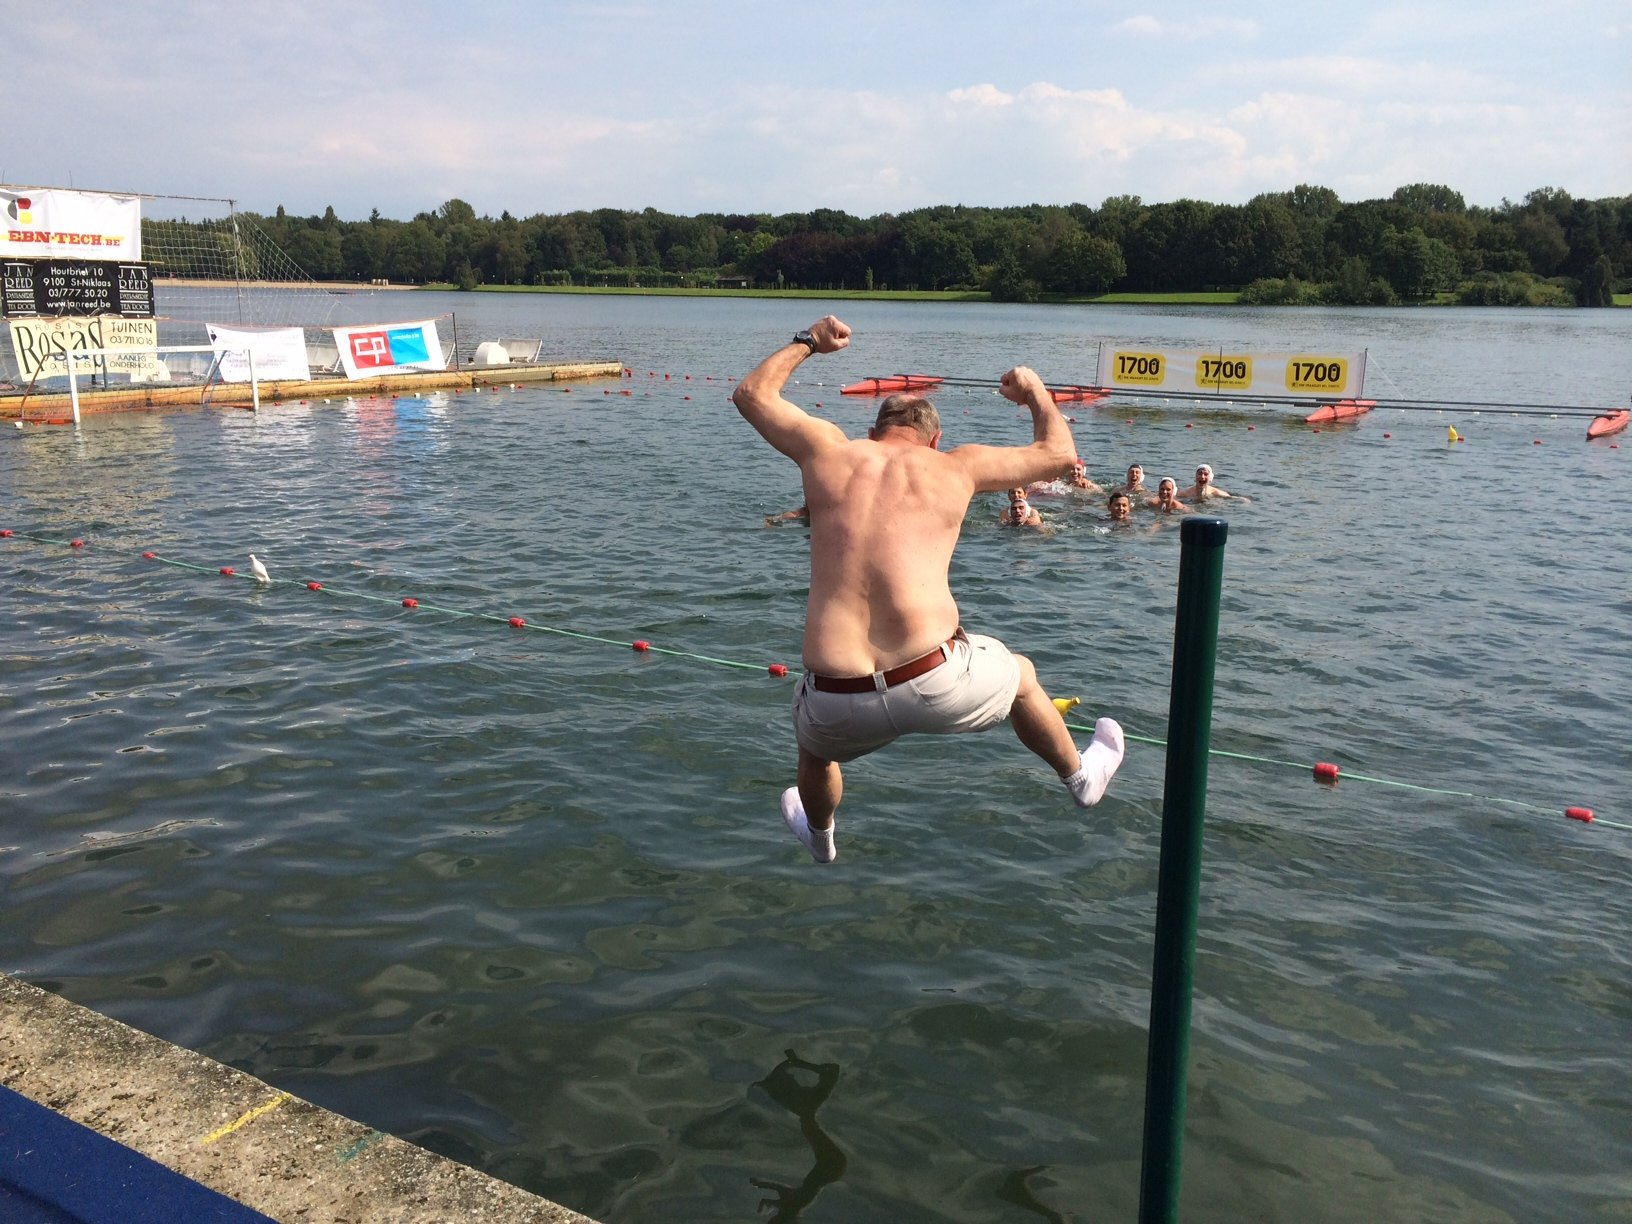 SDteve Baker jumping into the lake still wearing his clothes